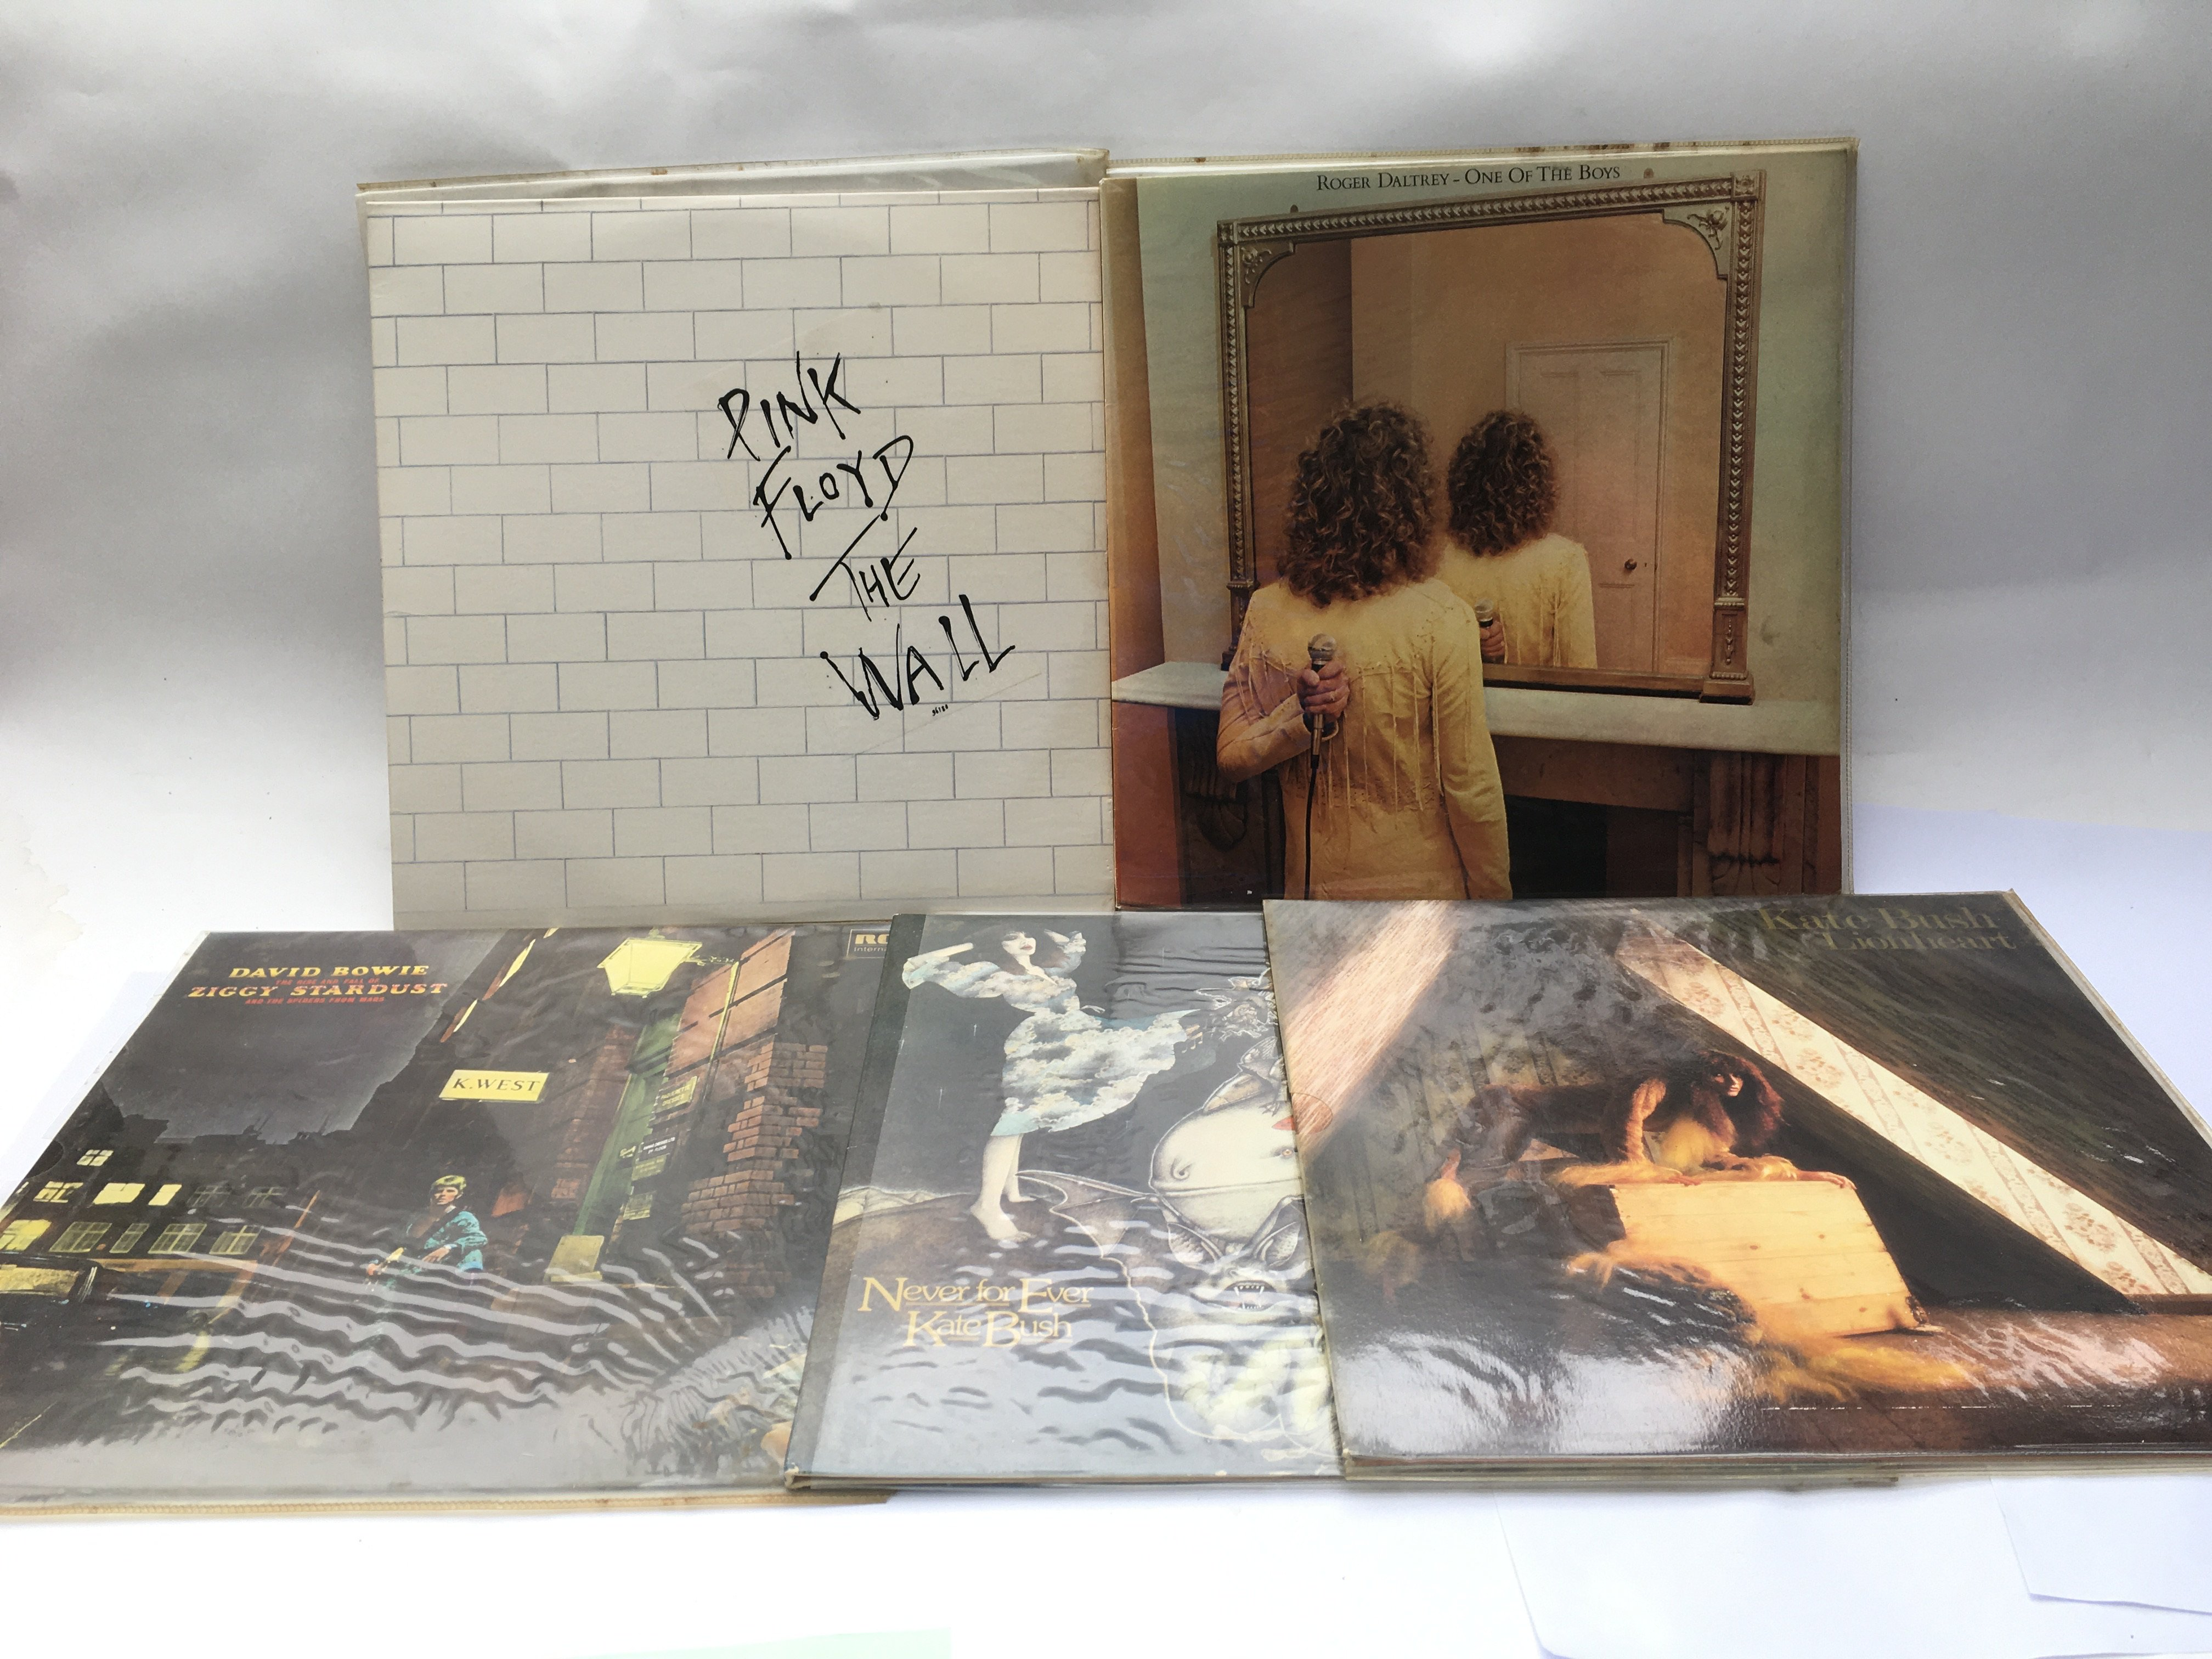 Five LPs including 'The Wall' by Pink Floyd, 'Zigg